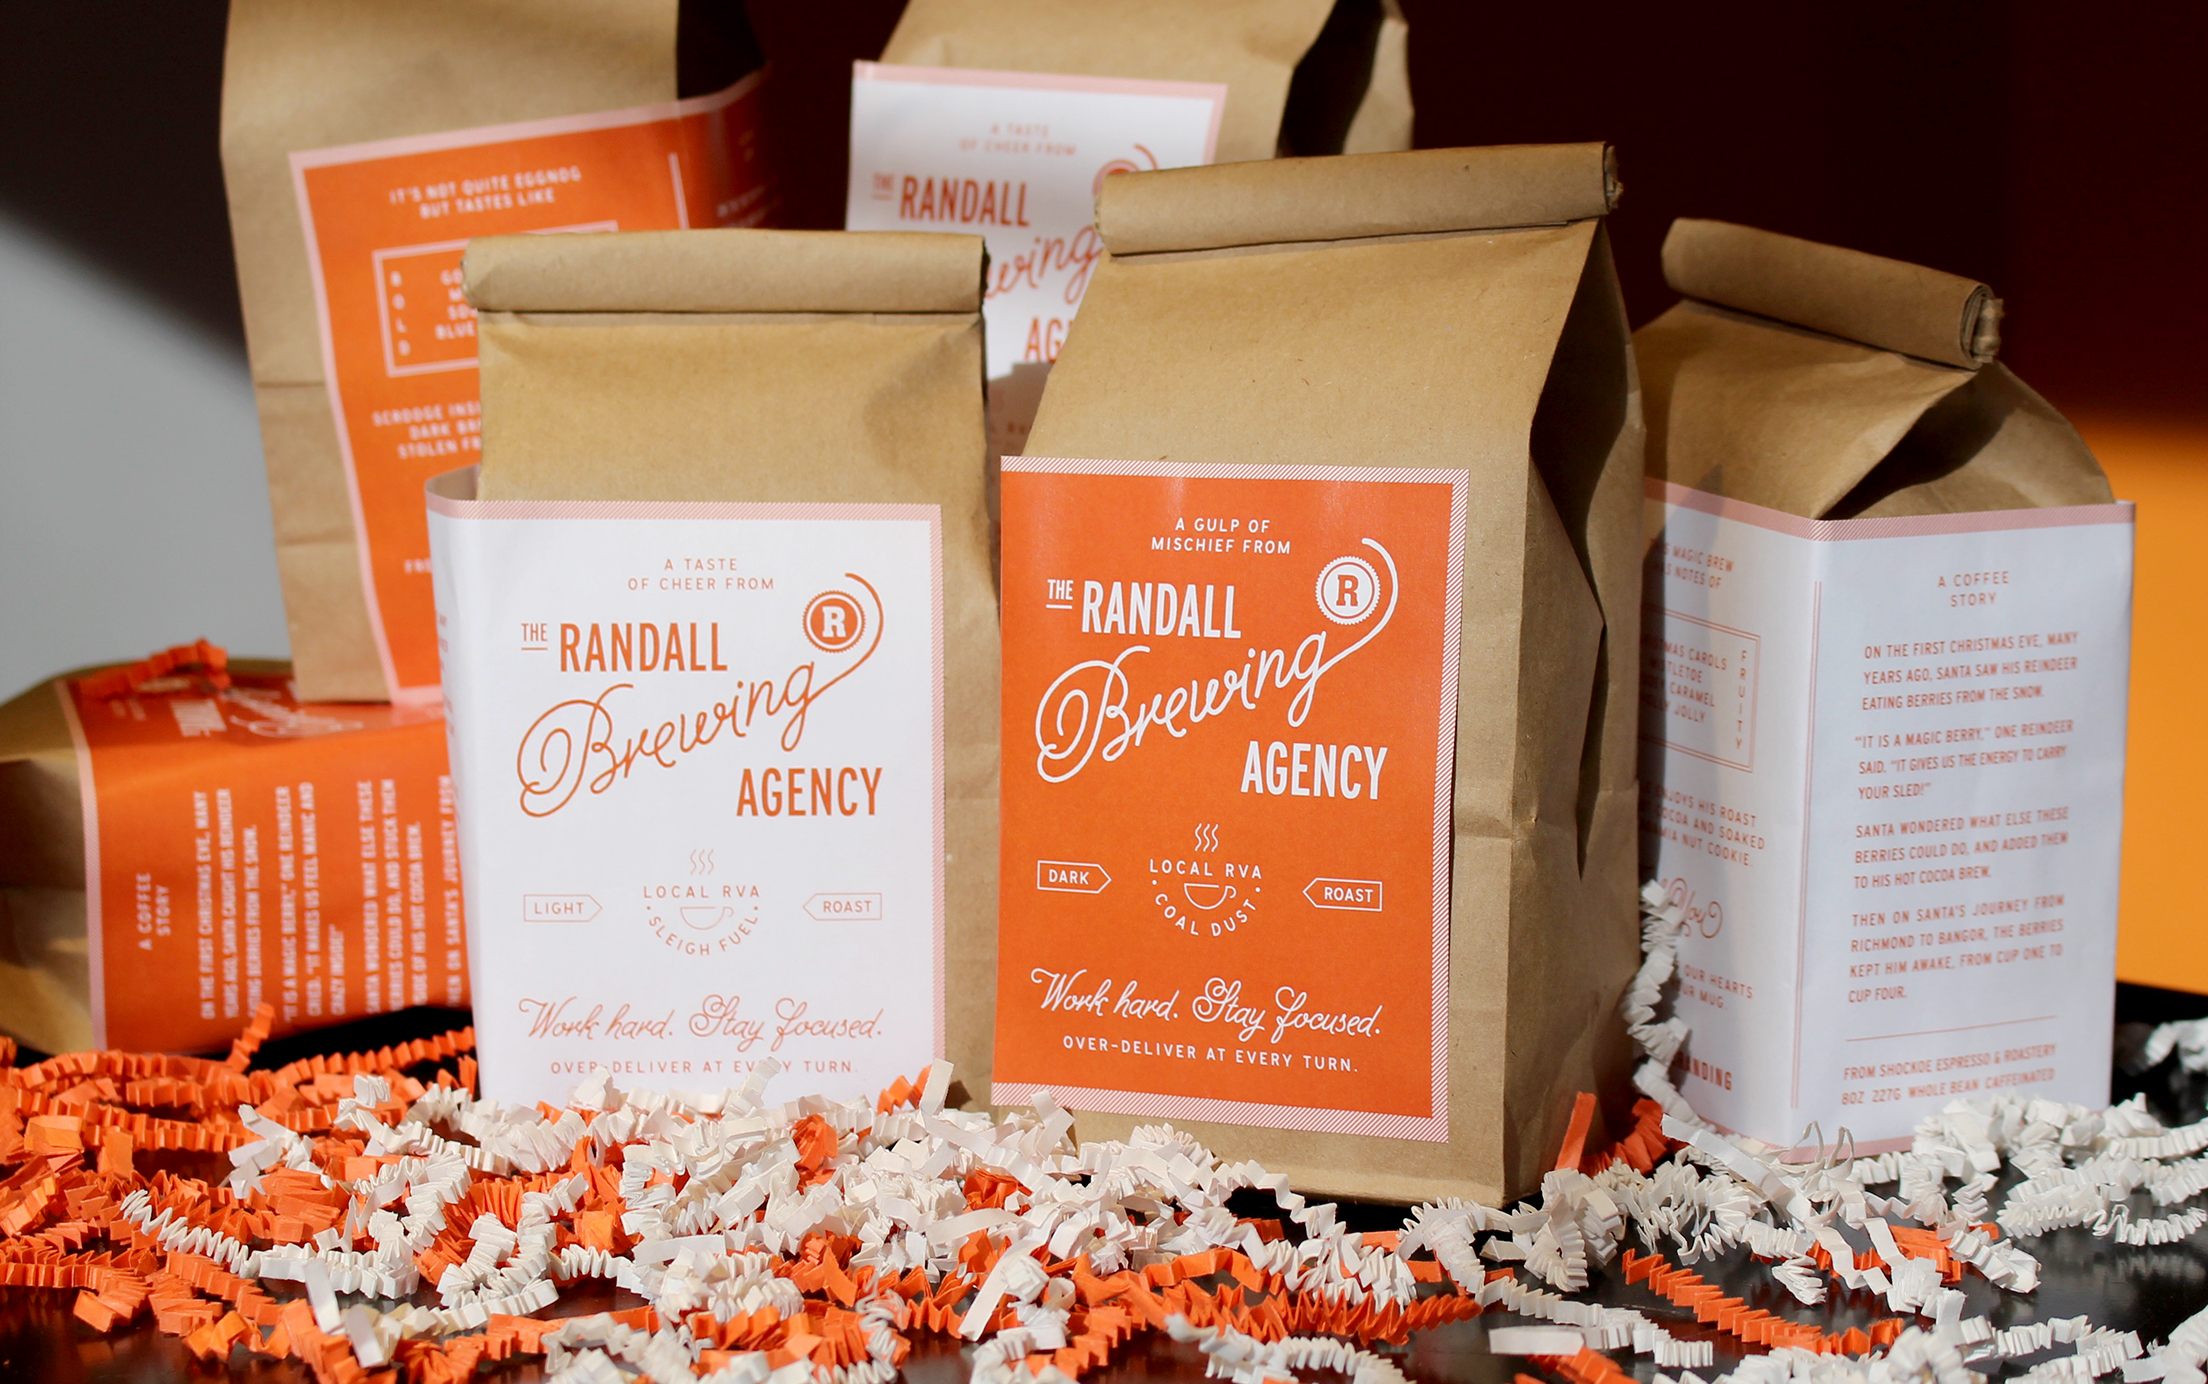 Packaging for Randall Branding